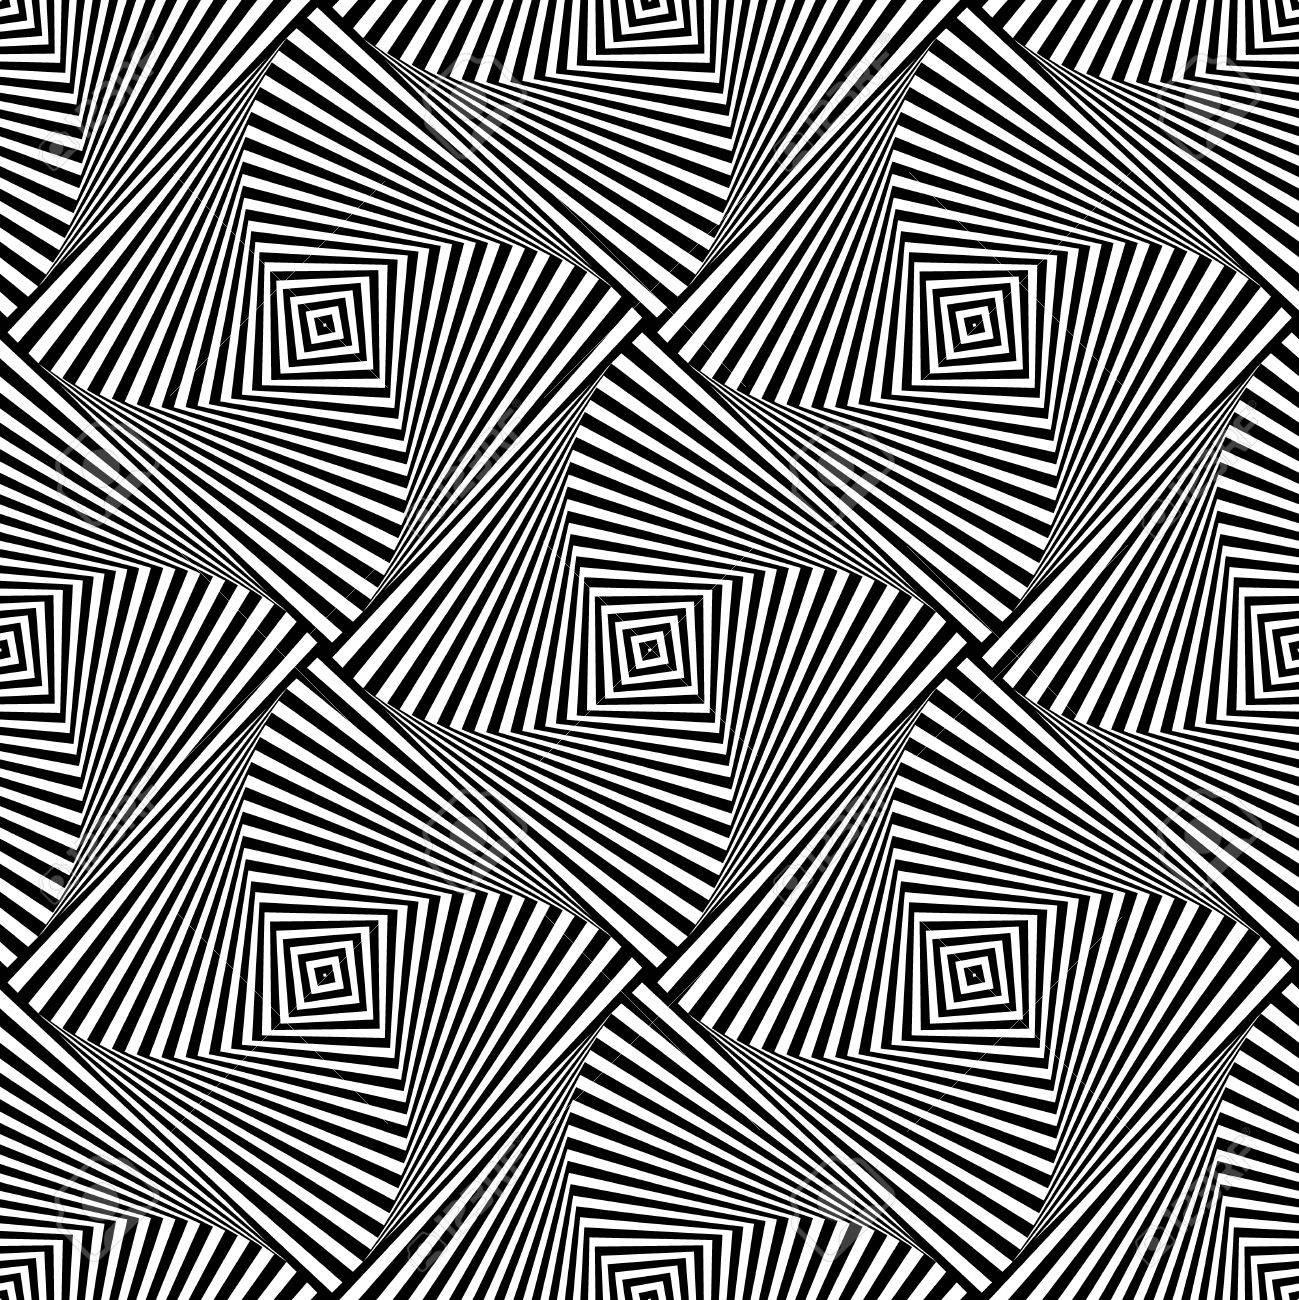 Rotating squares repeatable abstract pattern. Monochrome texture - 58892868